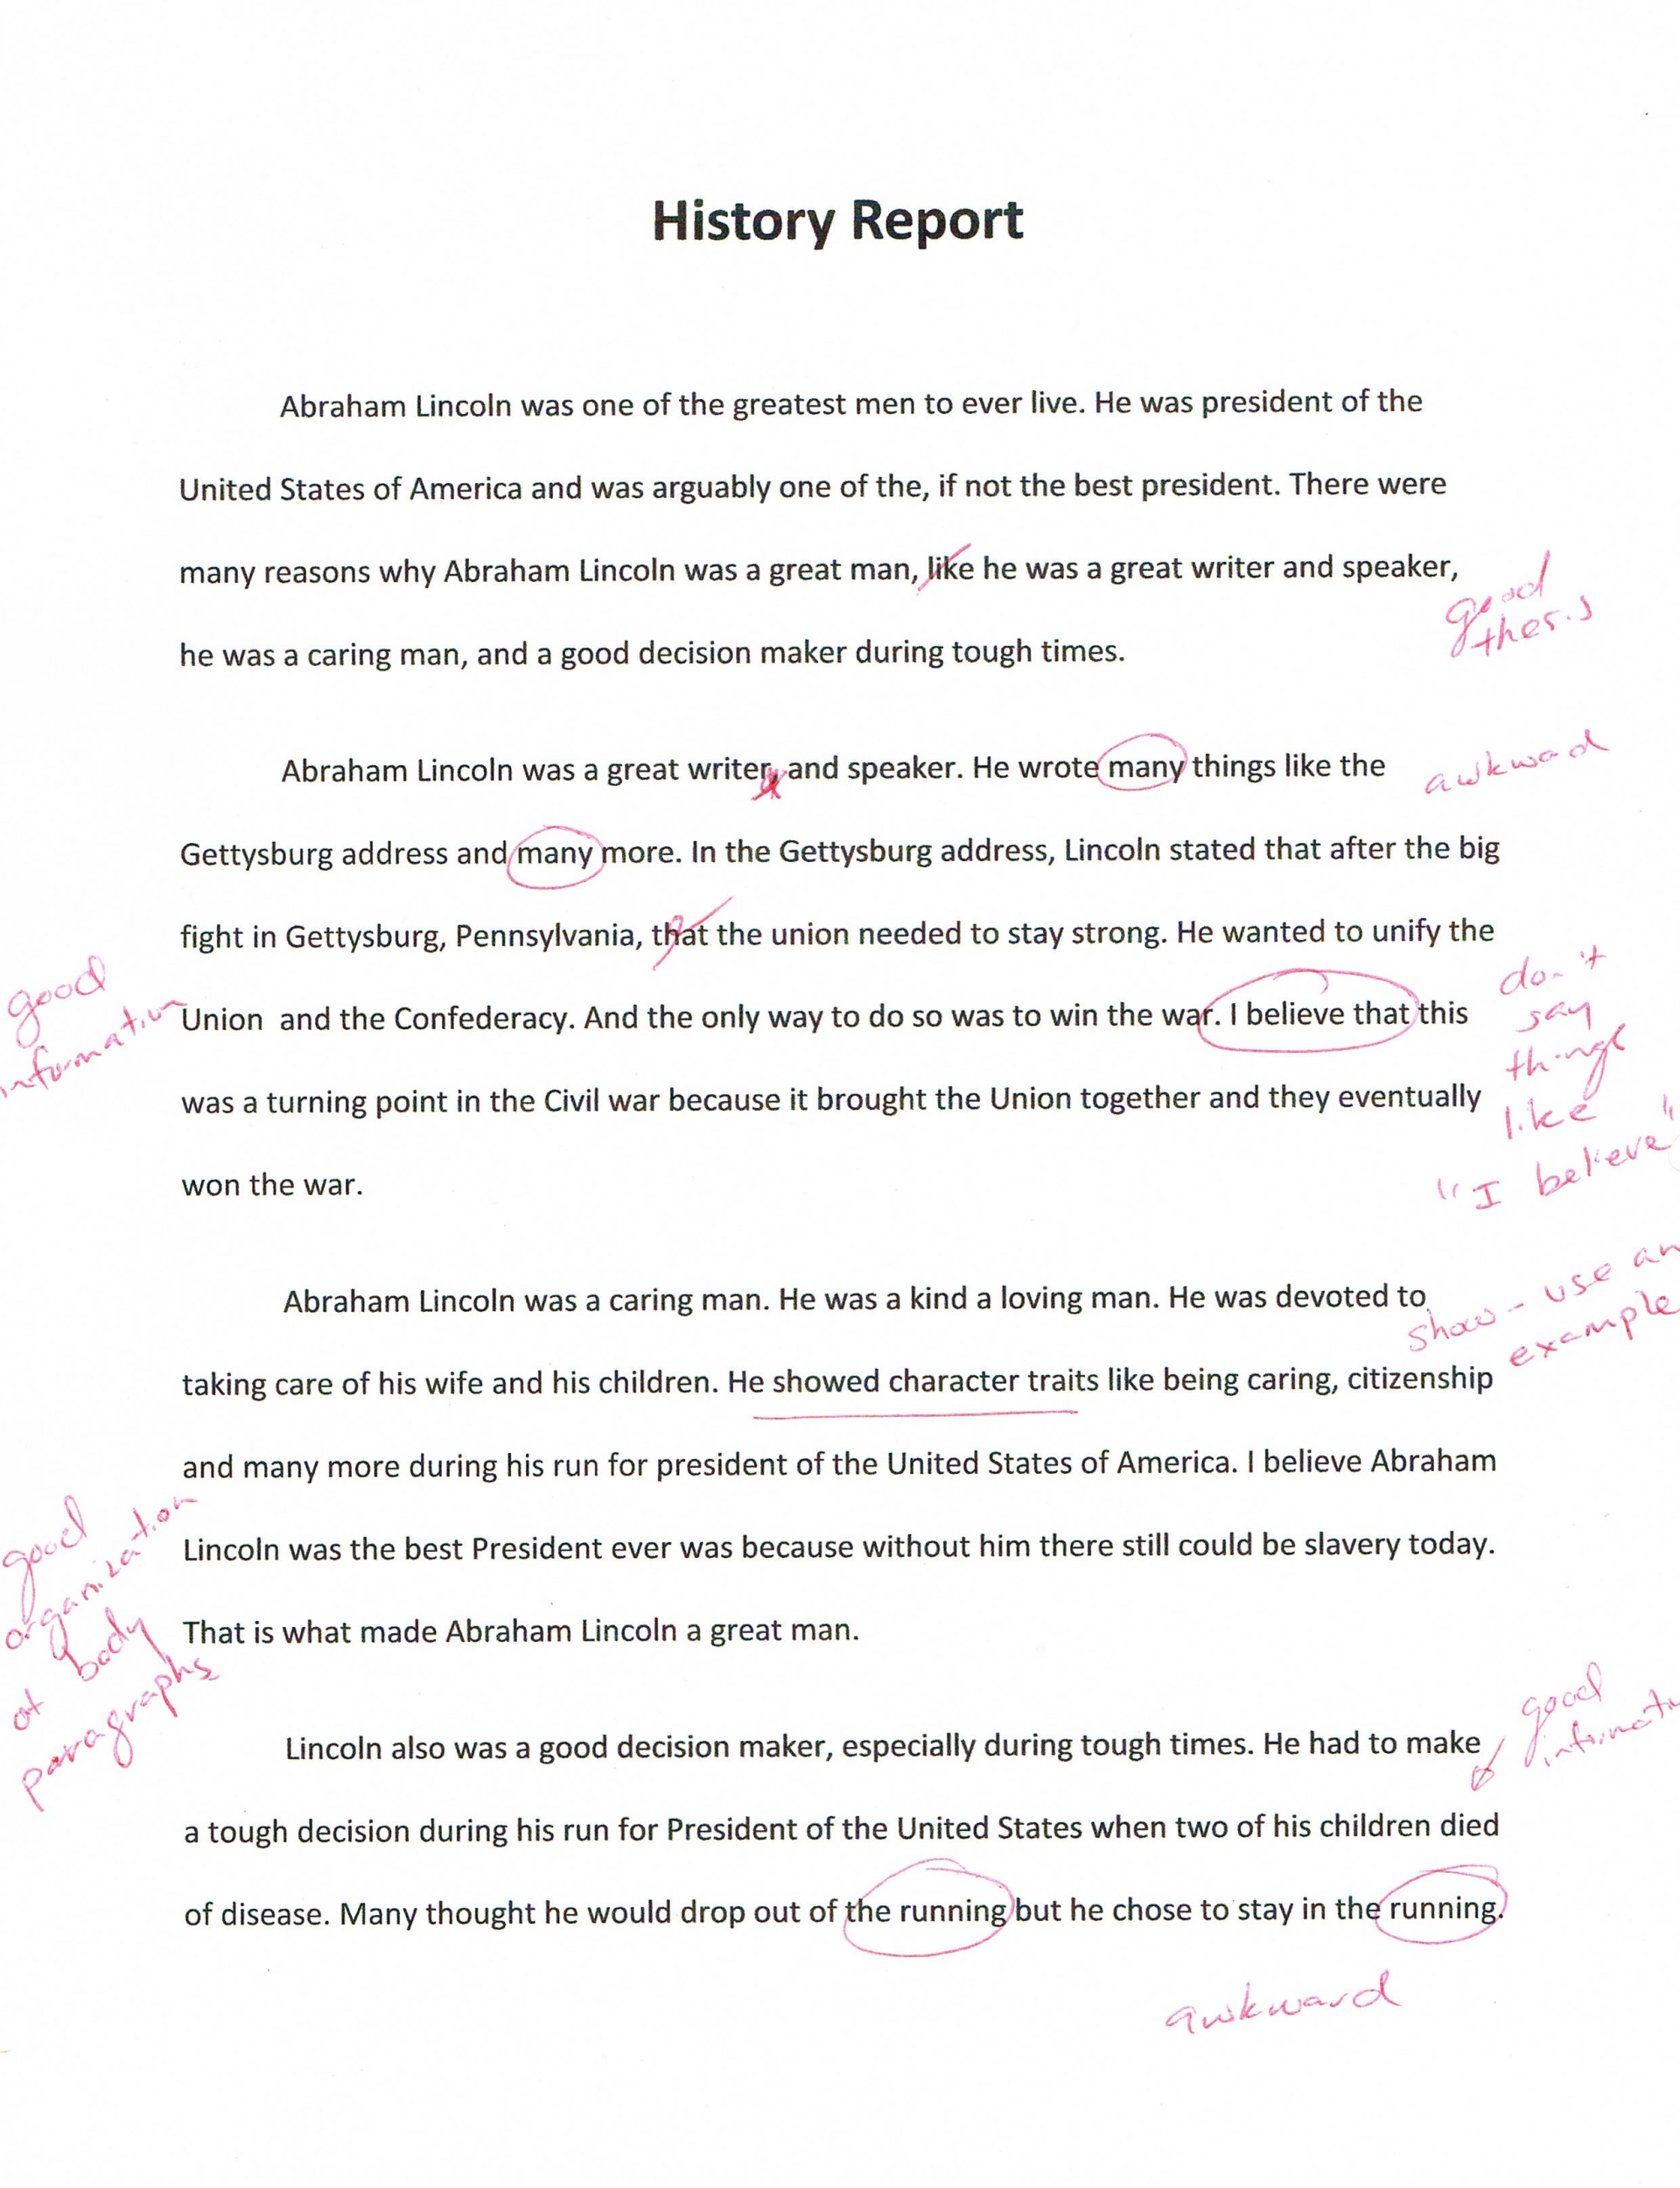 018 Essay Hook Examples Feedback Samples Archives The Tutoring Solution Interesting Hooks Formentative Essays Brockassignment Strong Good Persuasive Types Of List Sample Example Incredible For Argumentative Writing 1920